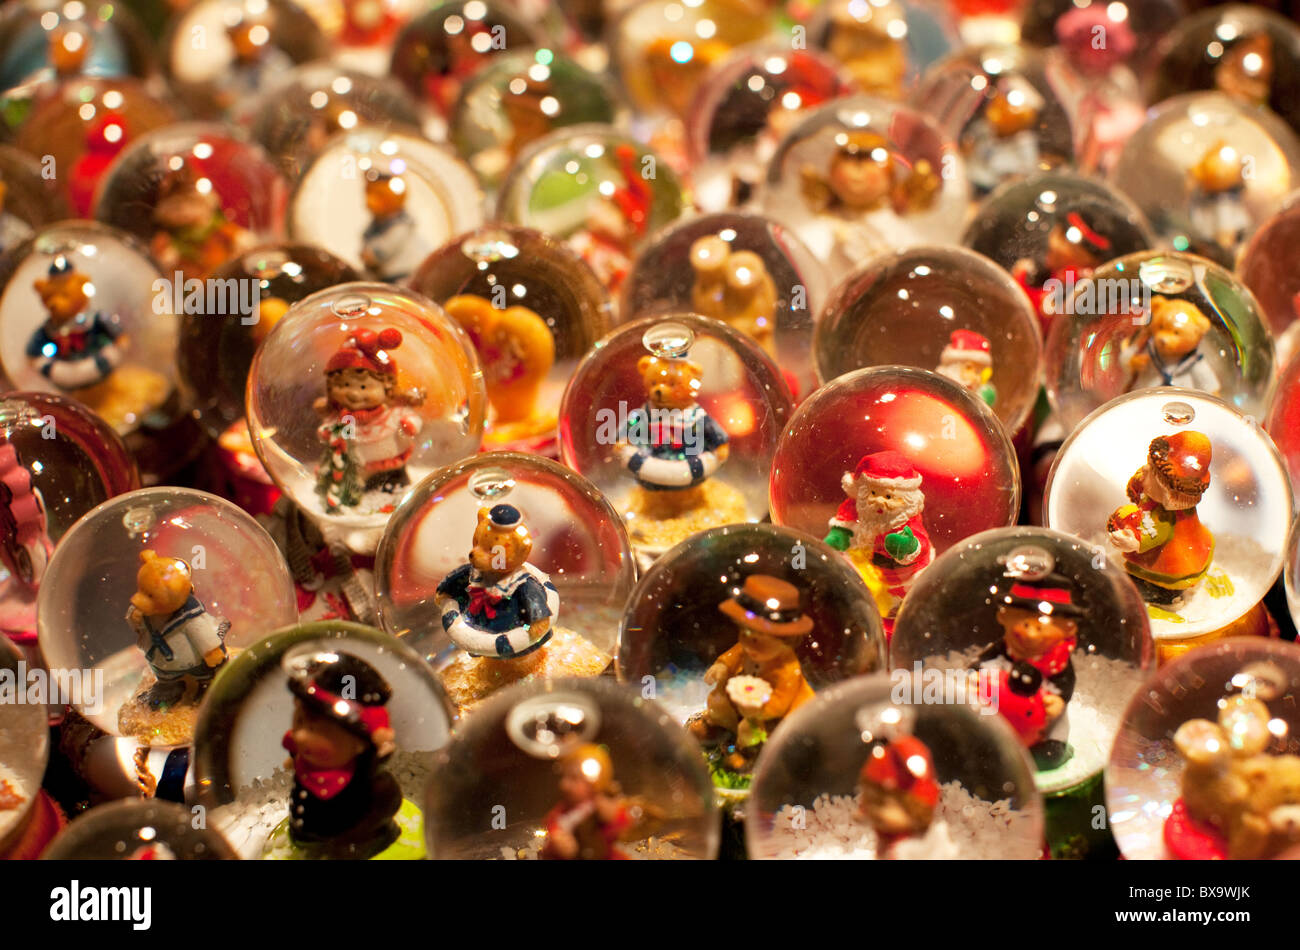 German christmas window decorations - Traditional German Christmas Ornaments Snow Globes At German Christmas Market In London Stock Image